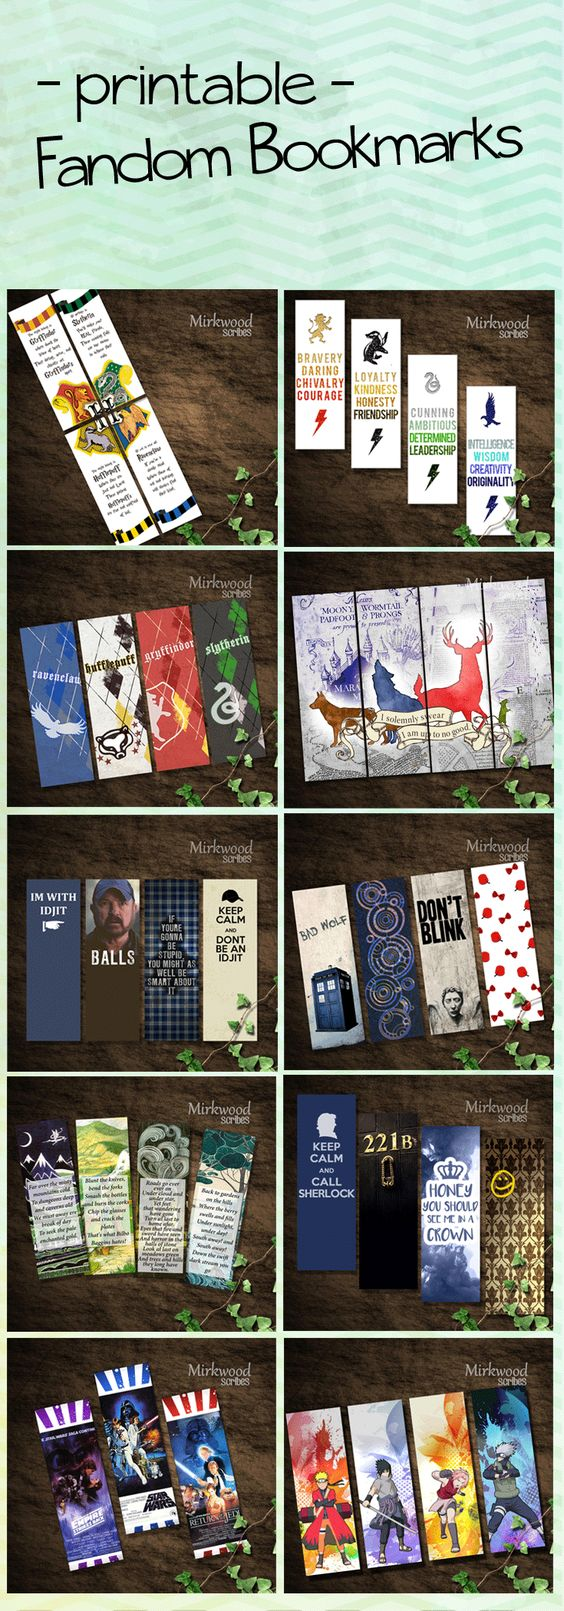 Printable Fandom Bookmarks! Great Geek Gift. Harry Potter, Supernatural, Doctor Who, Sherlock, Lord of the Rings, Naruto, Star Wars, & More!